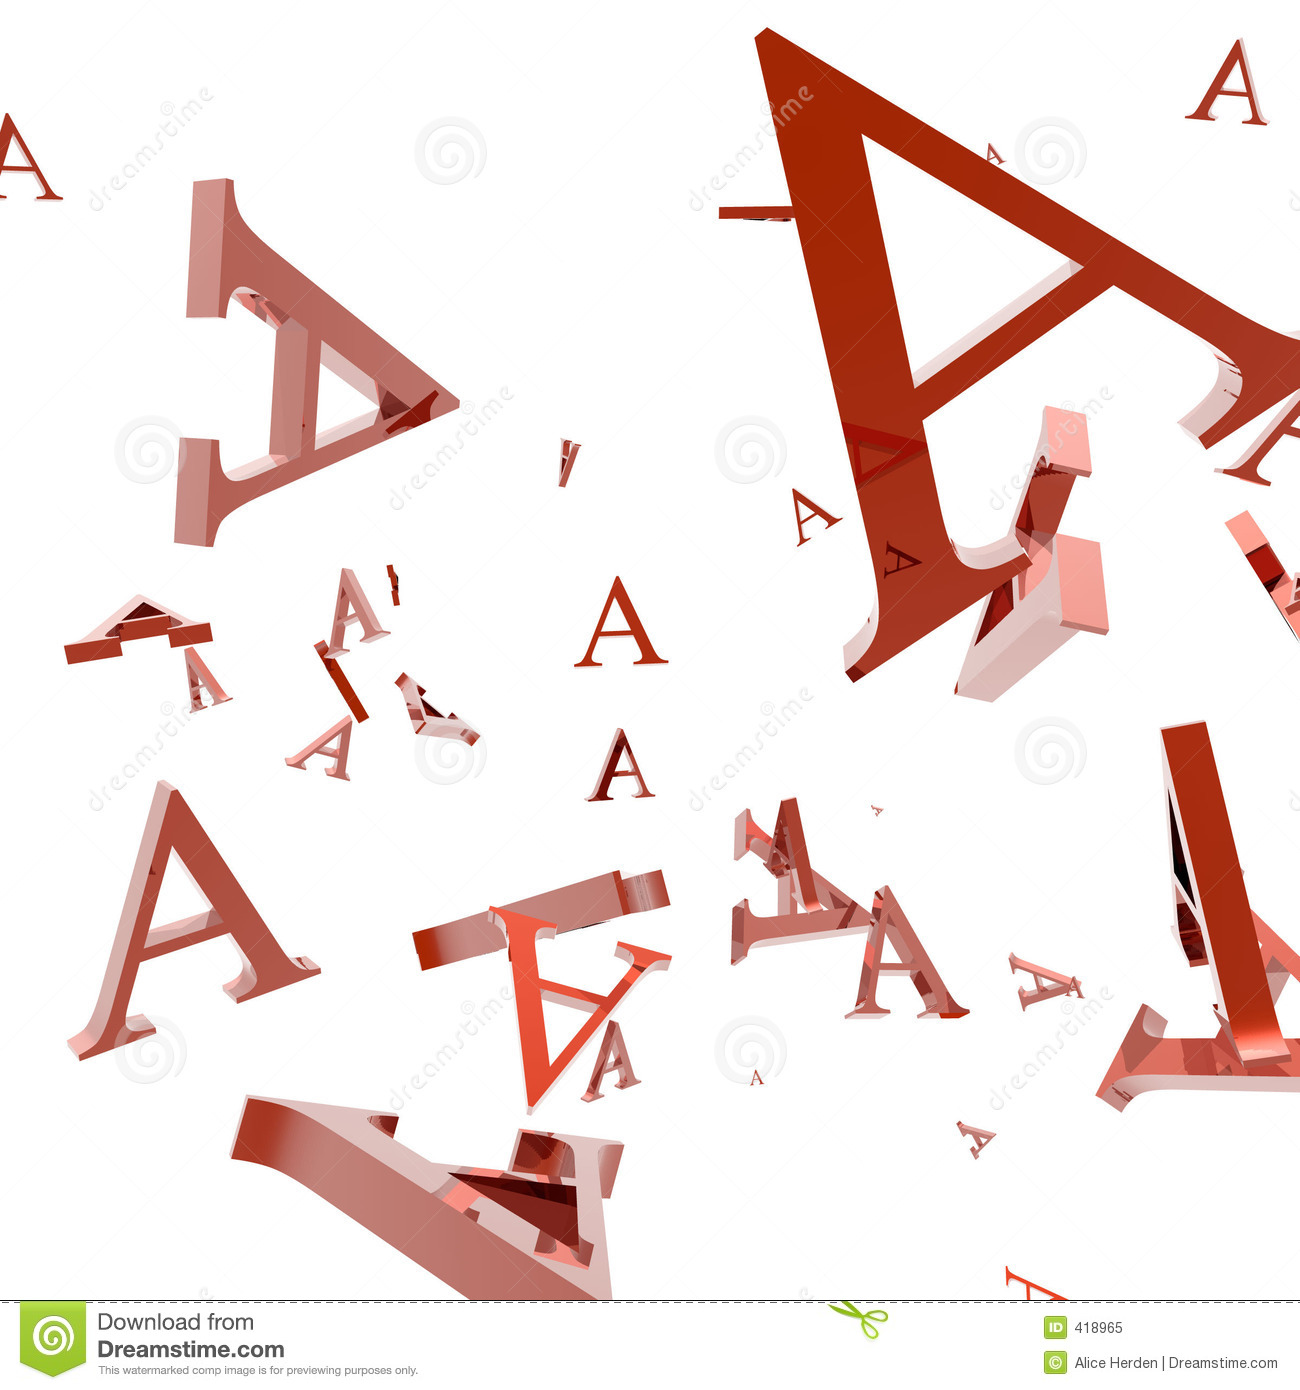 Letter A Royalty Free Stock Photo Image 418965